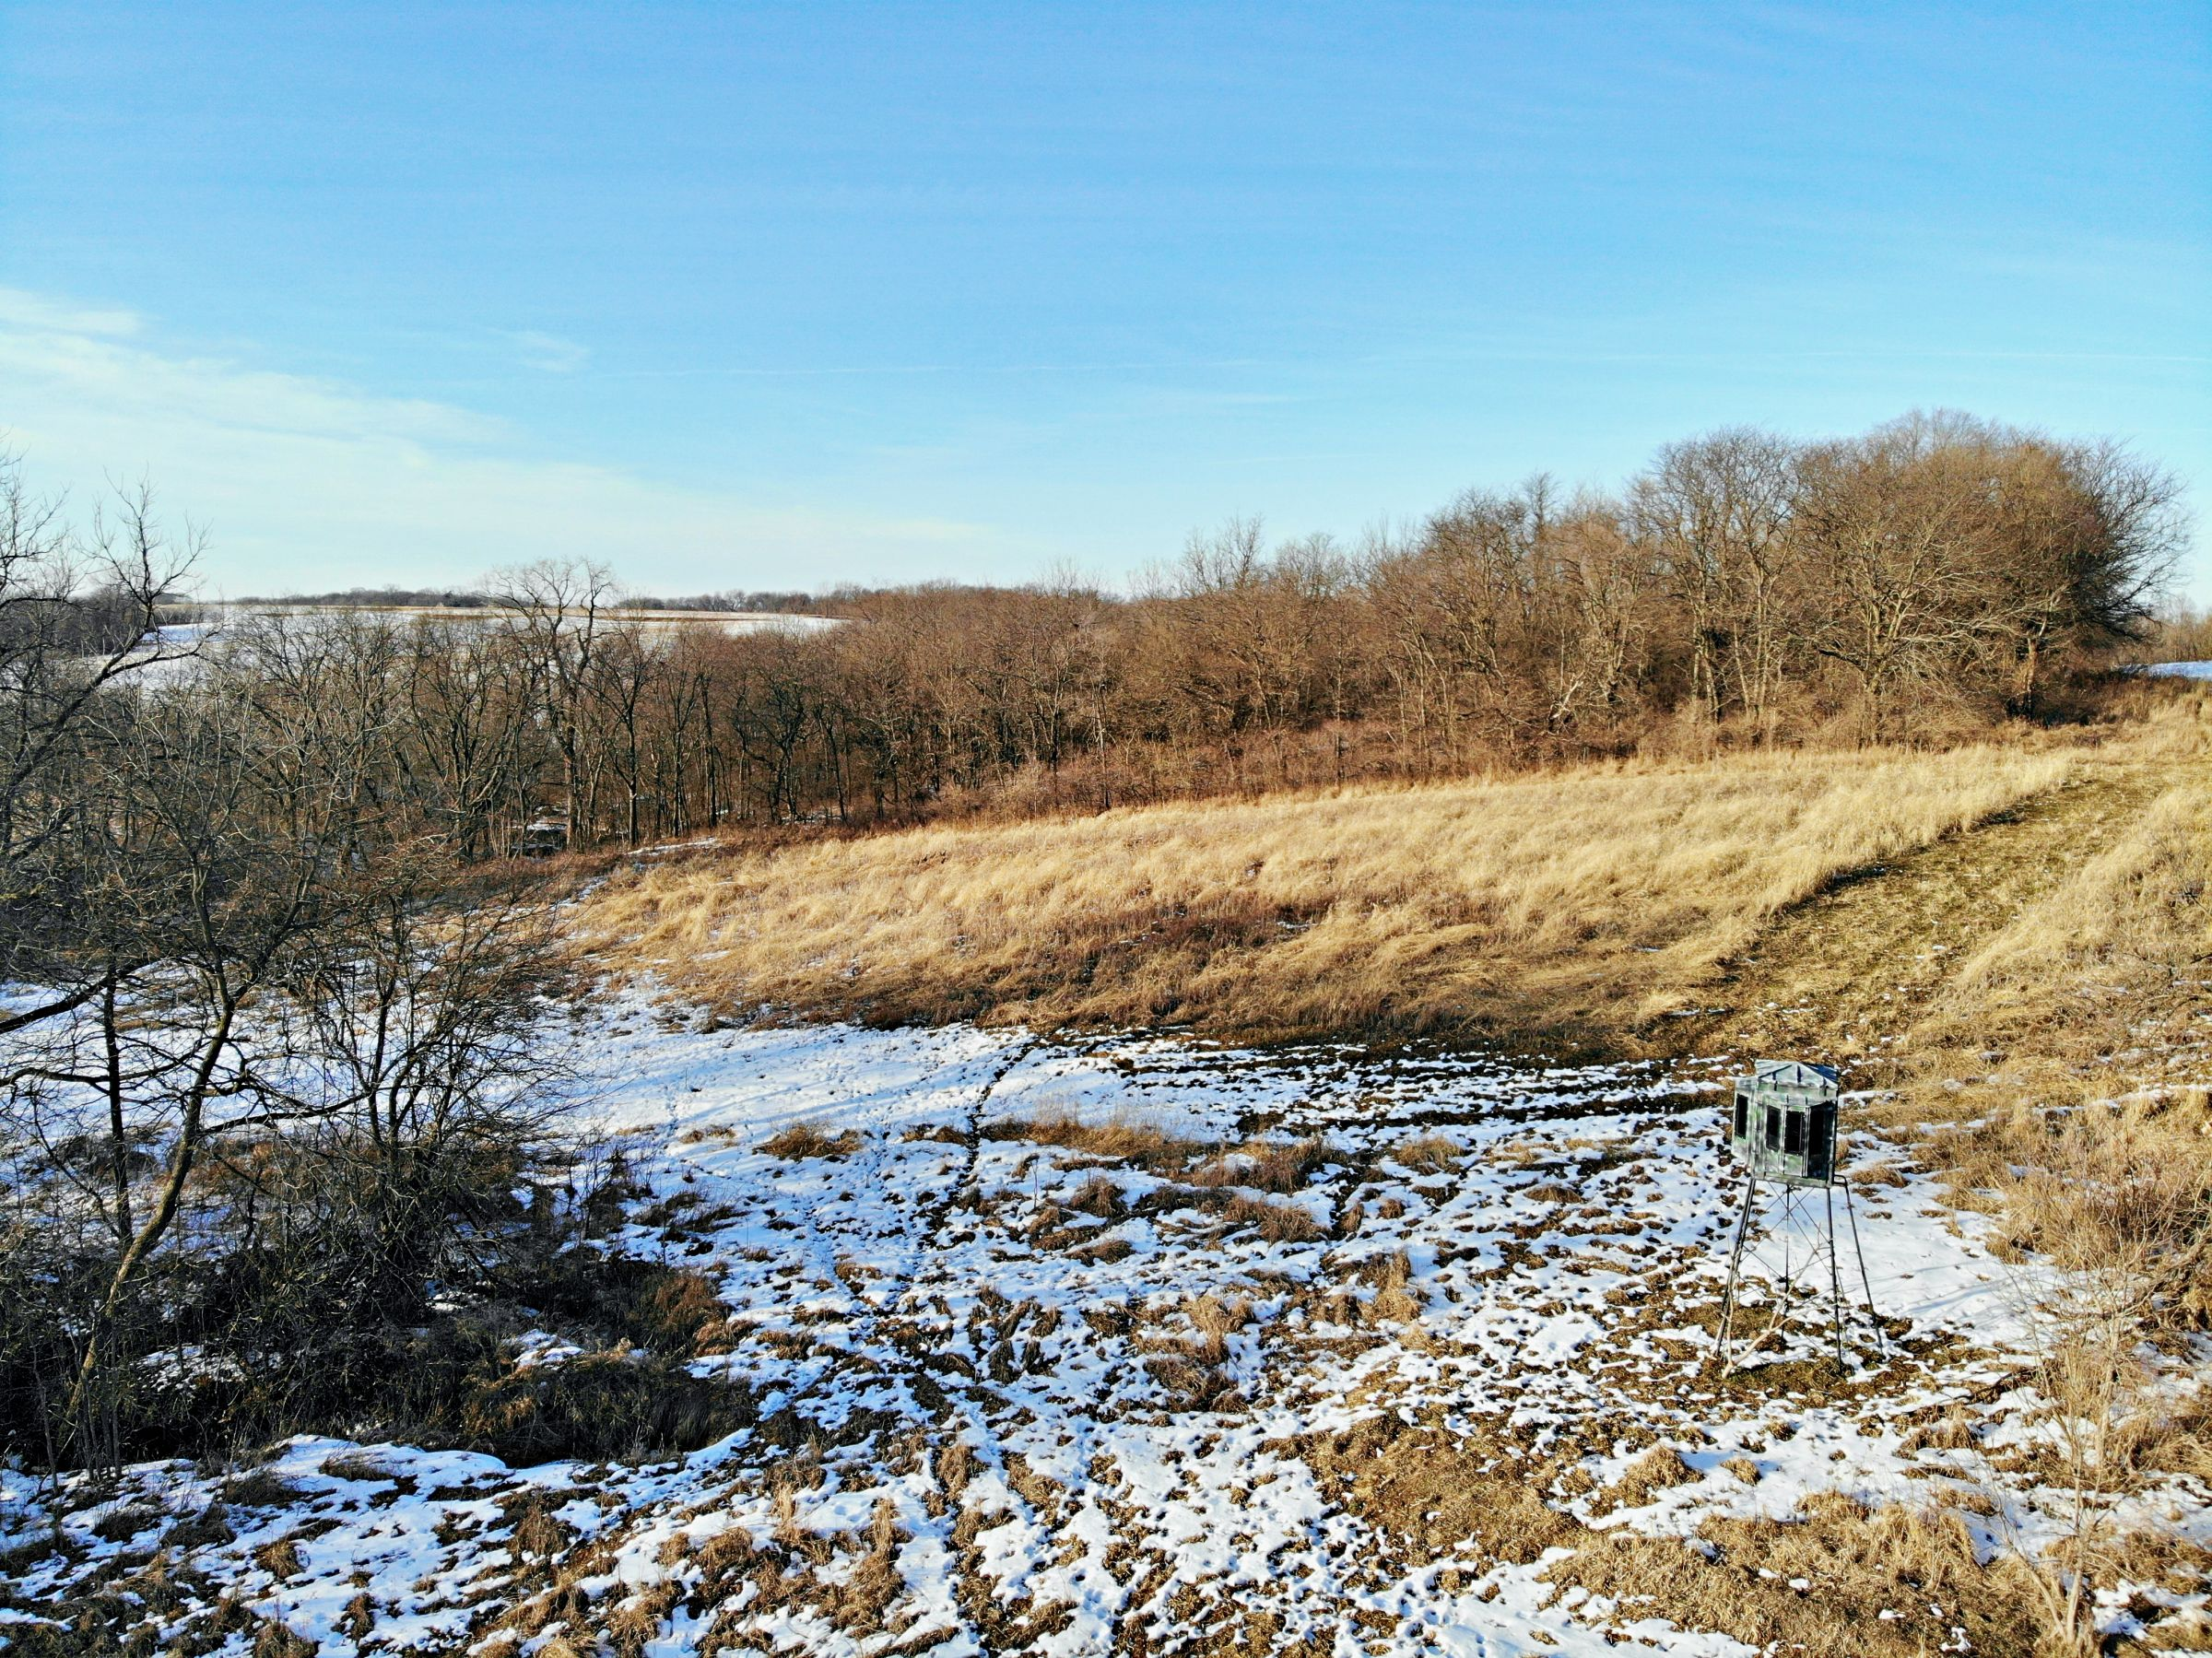 land-warren-county-iowa-21-acres-listing-number-15324-2-2021-01-18-024940.jpg